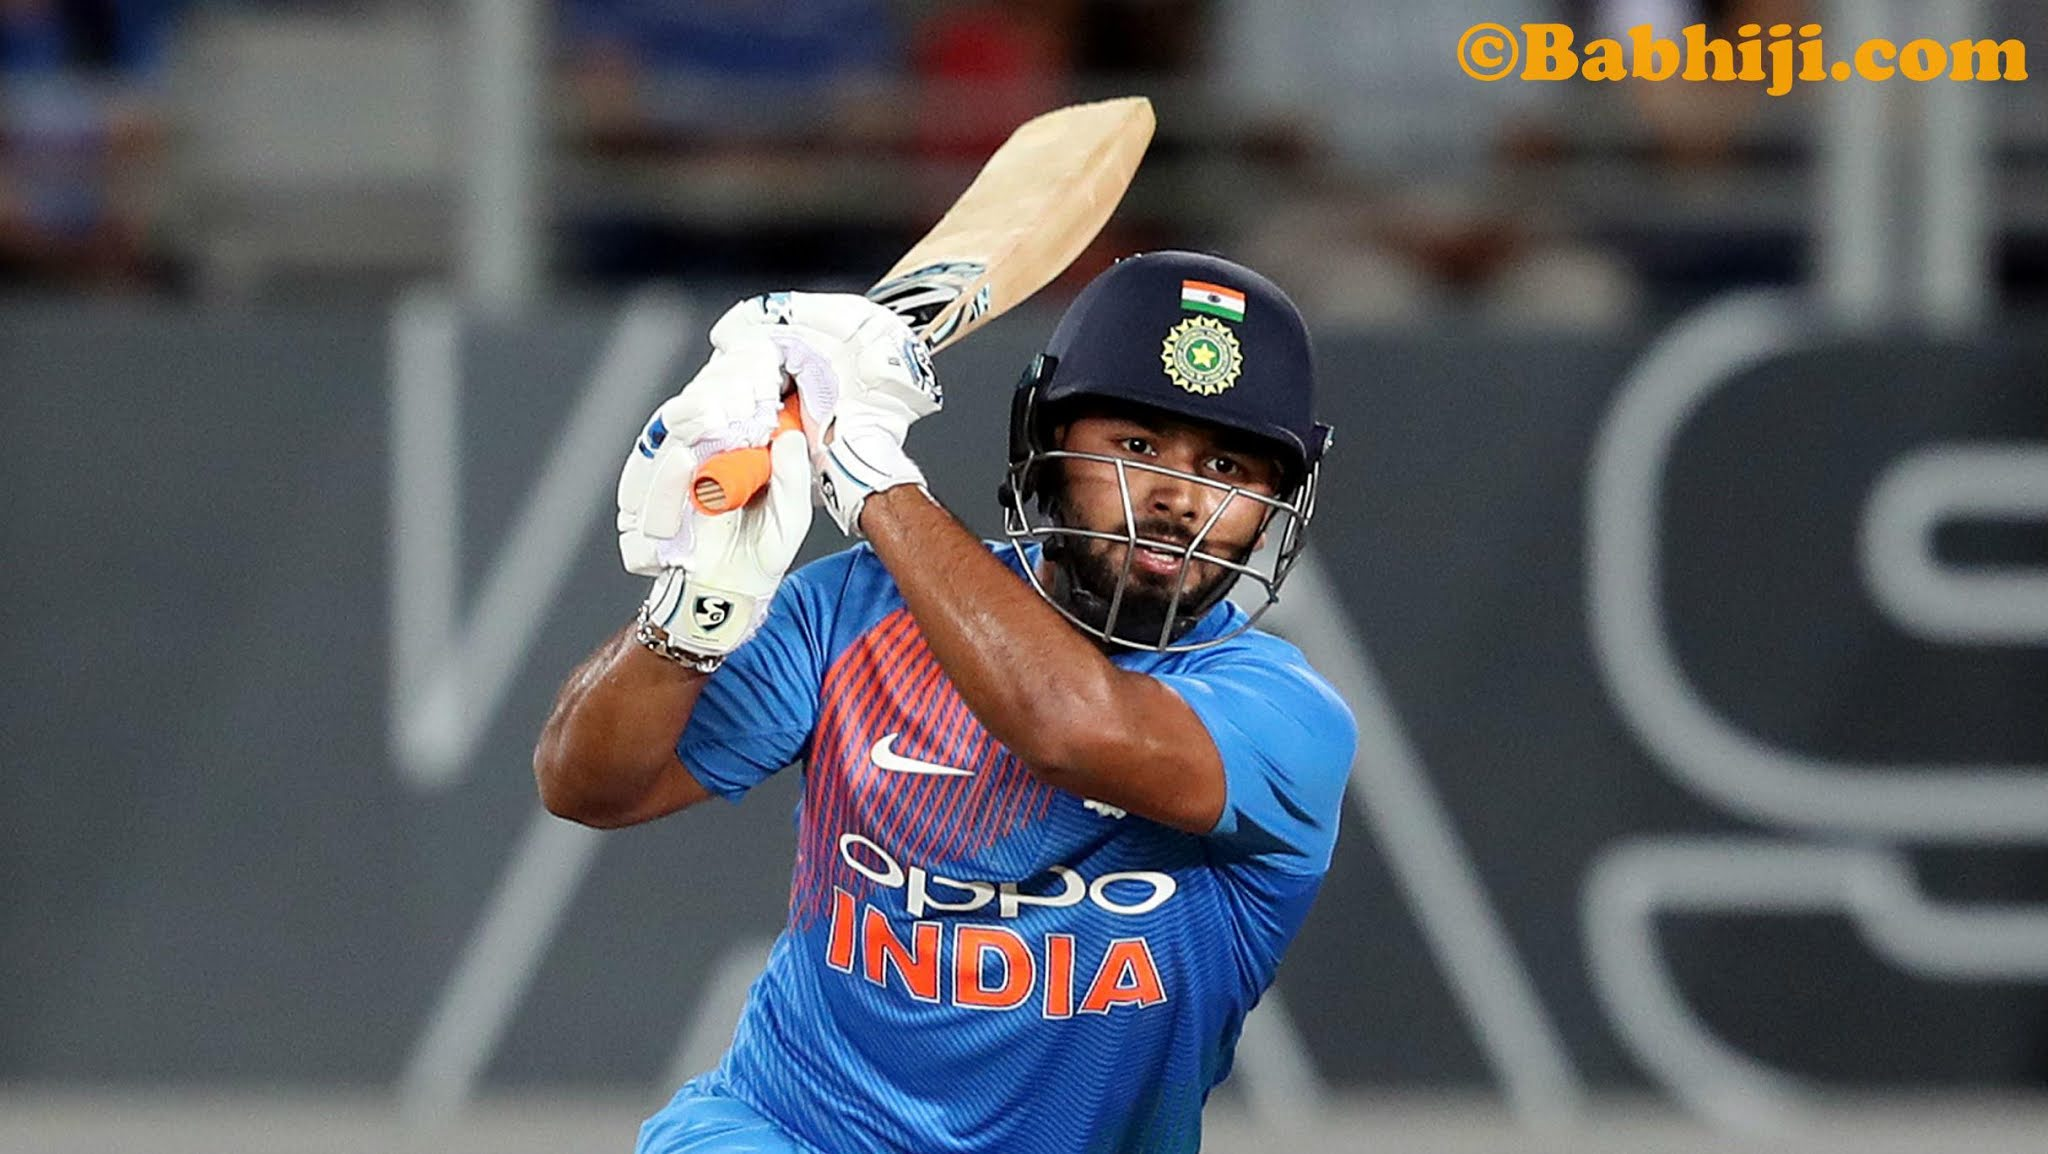 Rishabh%2BPant4 Rishabh Pant Biography, Best innings, Success Story, Age, Height, Weight, History, Personal life, Best Photos, and more 2021.